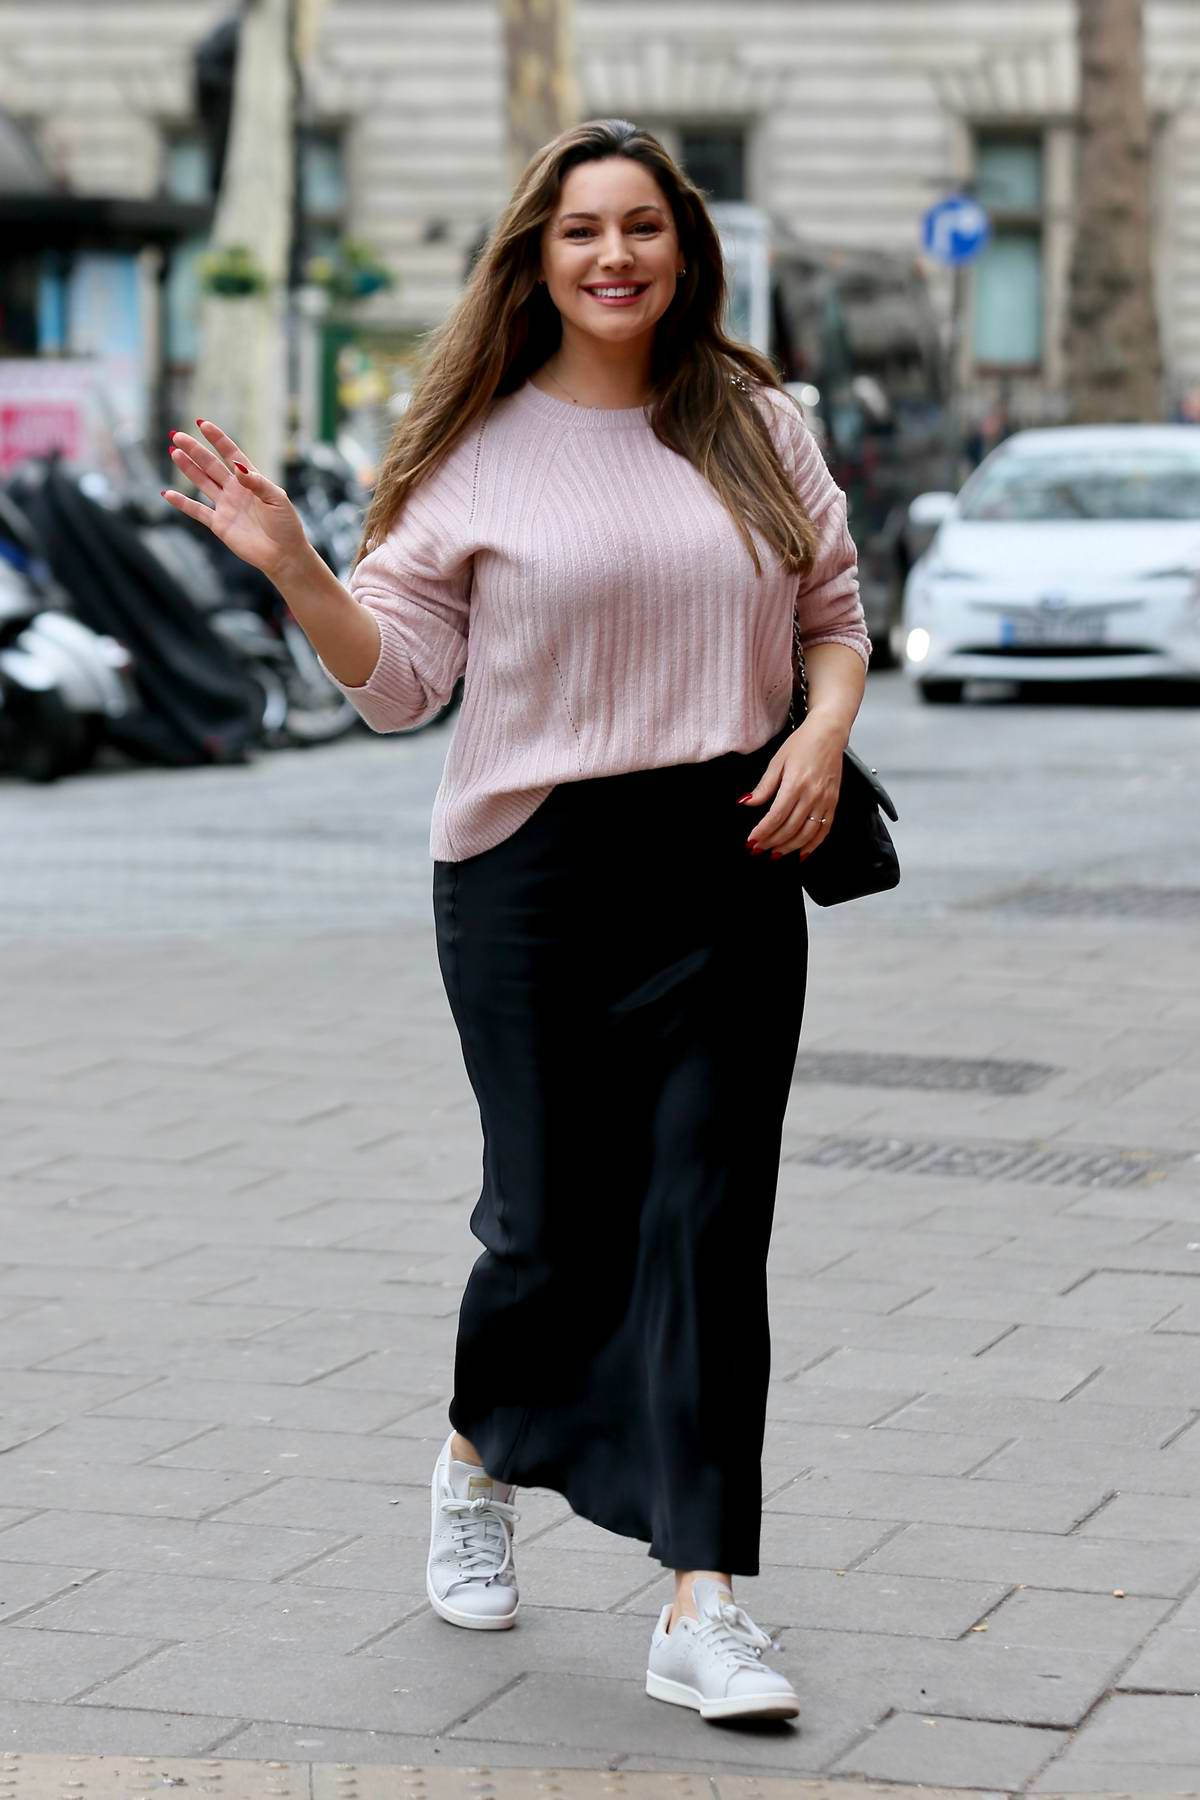 Kelly Brook looks lovely in a pink sweater and black long skirt as she arrives at Global Radio studios in London, UK